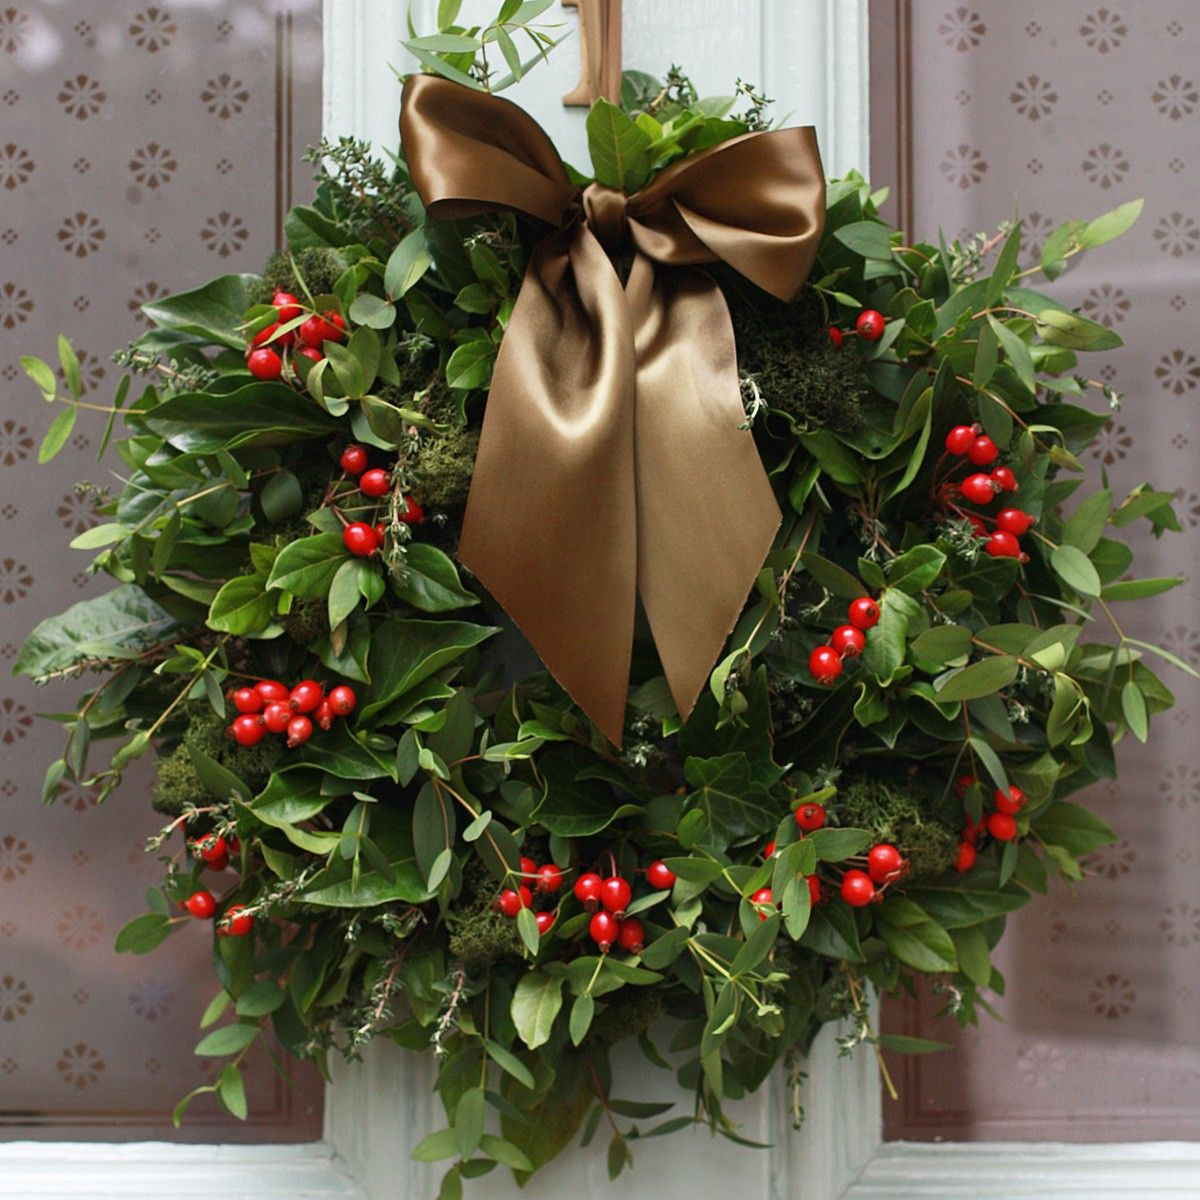 Front door christmas wreaths - Beautiful Natural Christmas Wreath Composed Of Green Leaves And Red Berries With A Large Brown Ribbon